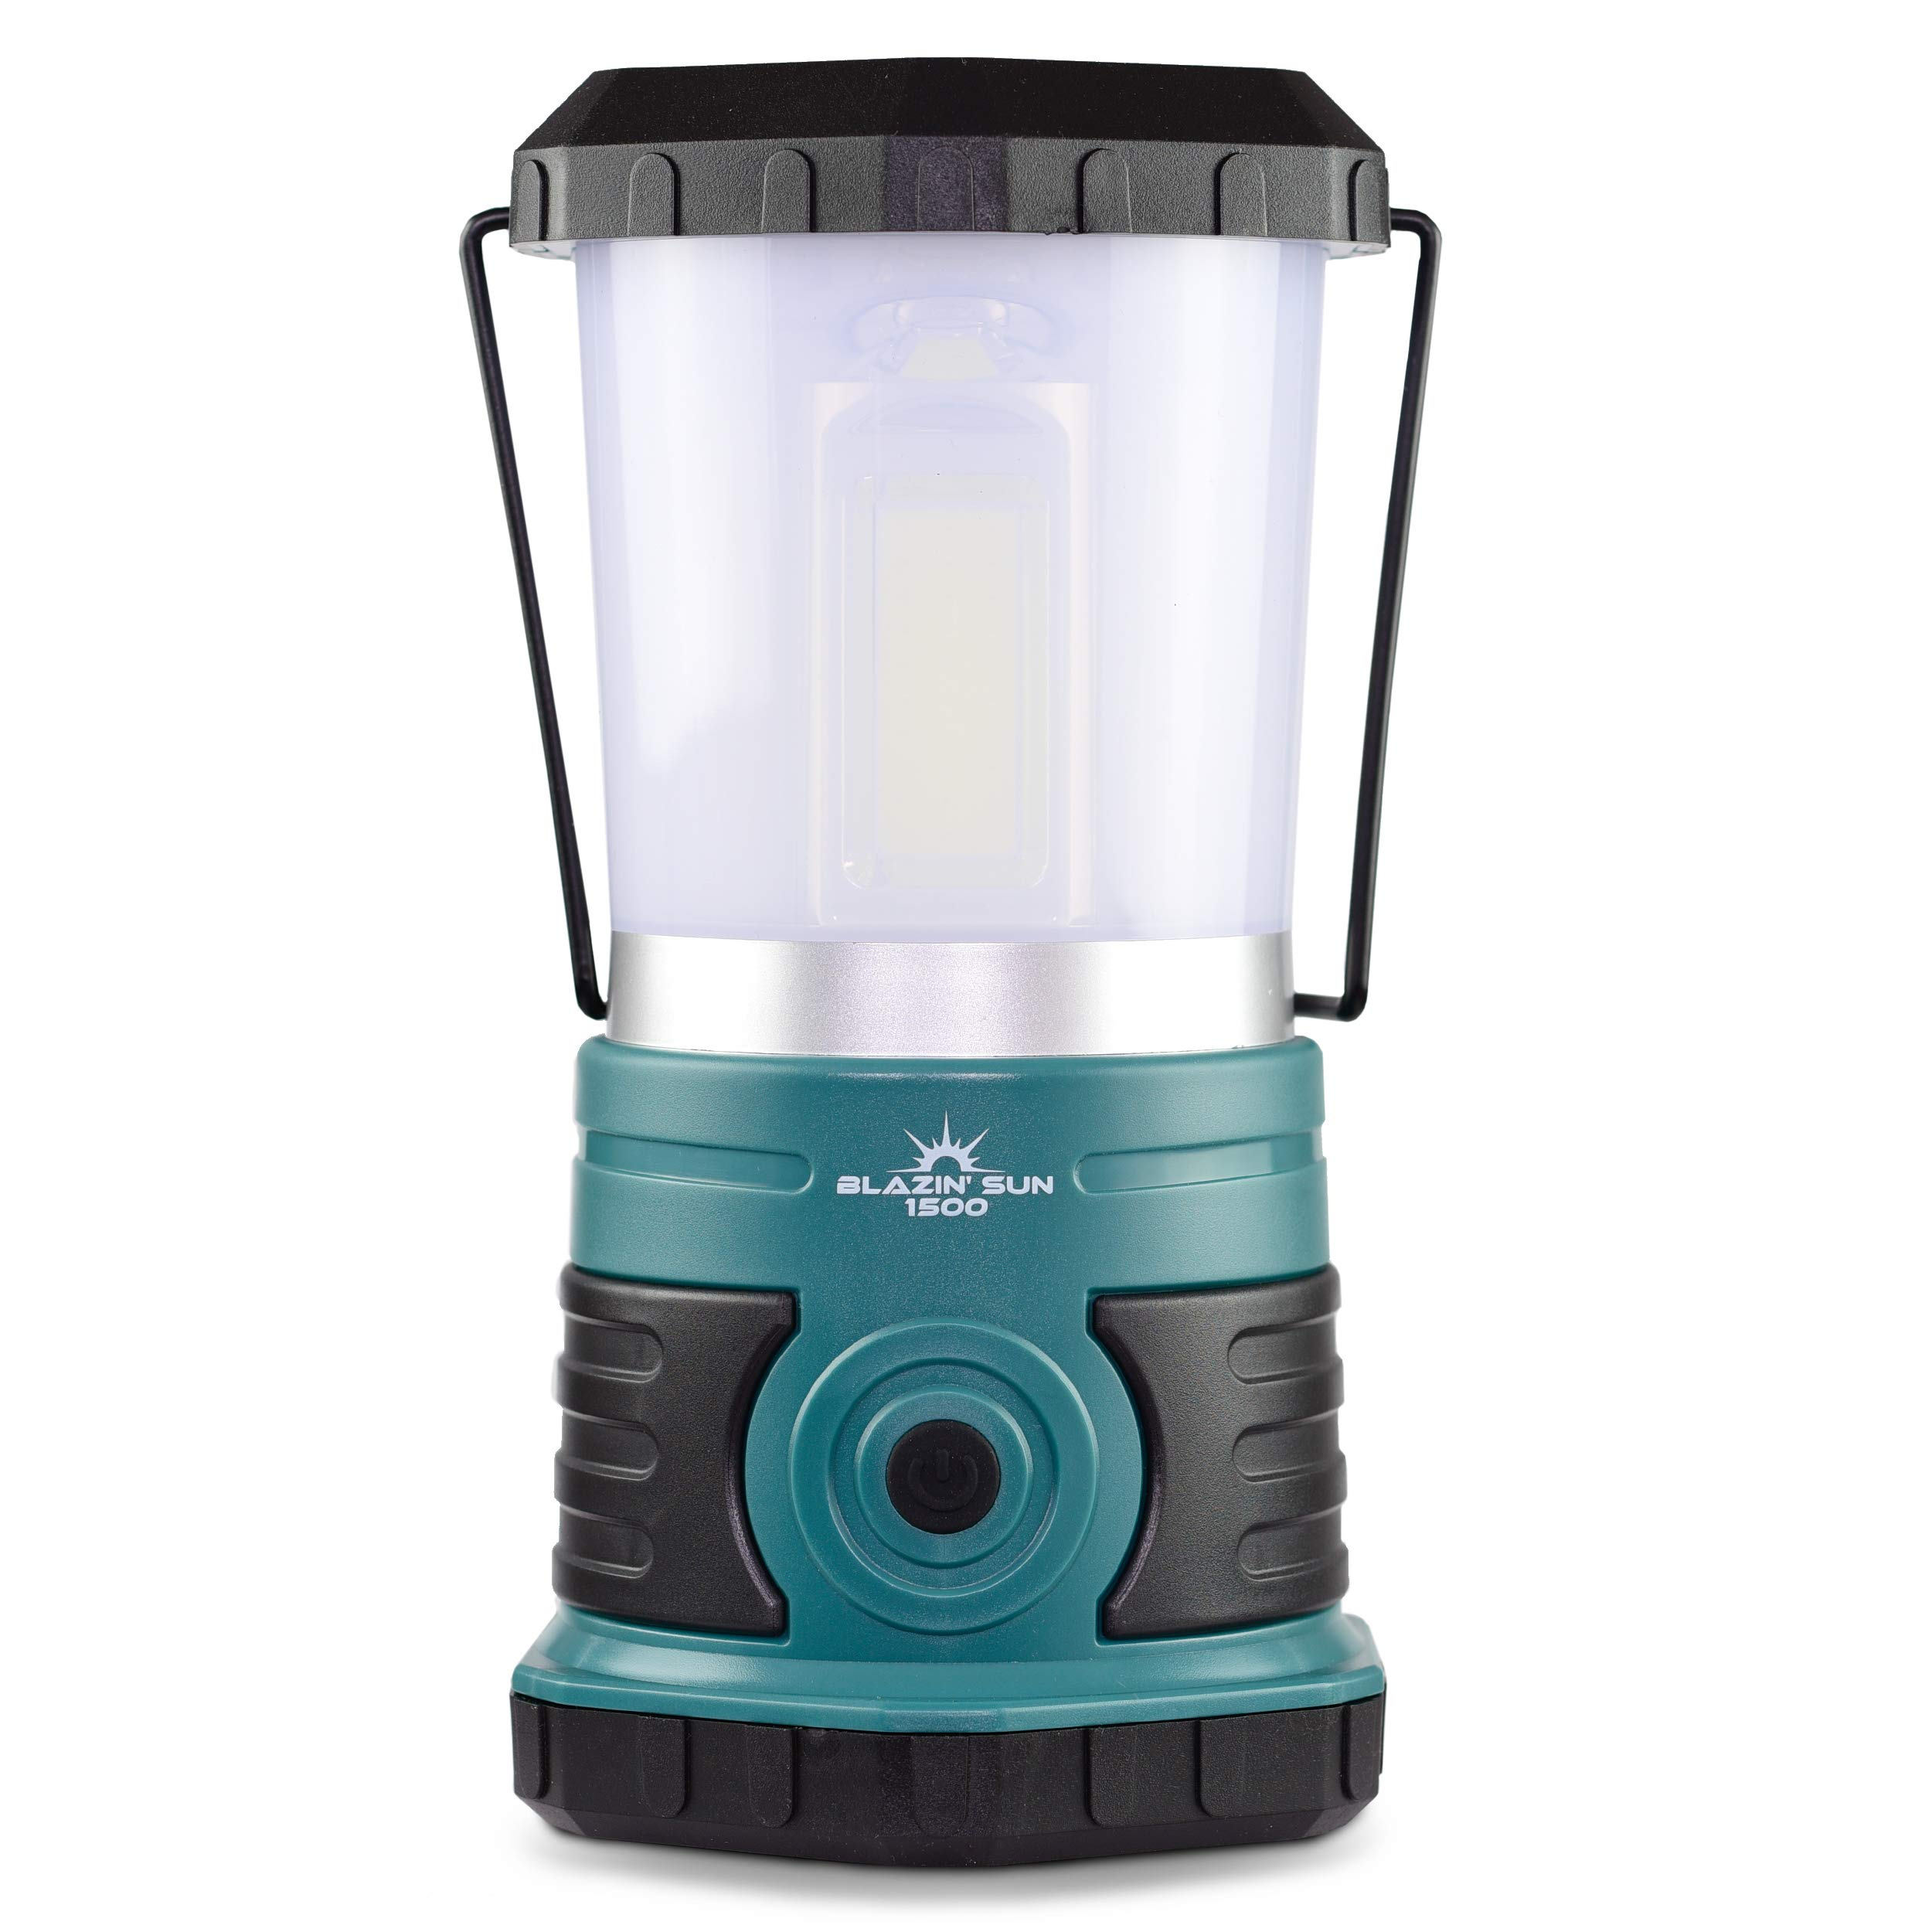 Blazin' Sun 1500 Lumen | Led Lanterns Battery Operated | Hurricane, Emergency, Storm, Power Outage Light | 200 Hour Runtime (Teal) by Blazin' Bison (Image #1)